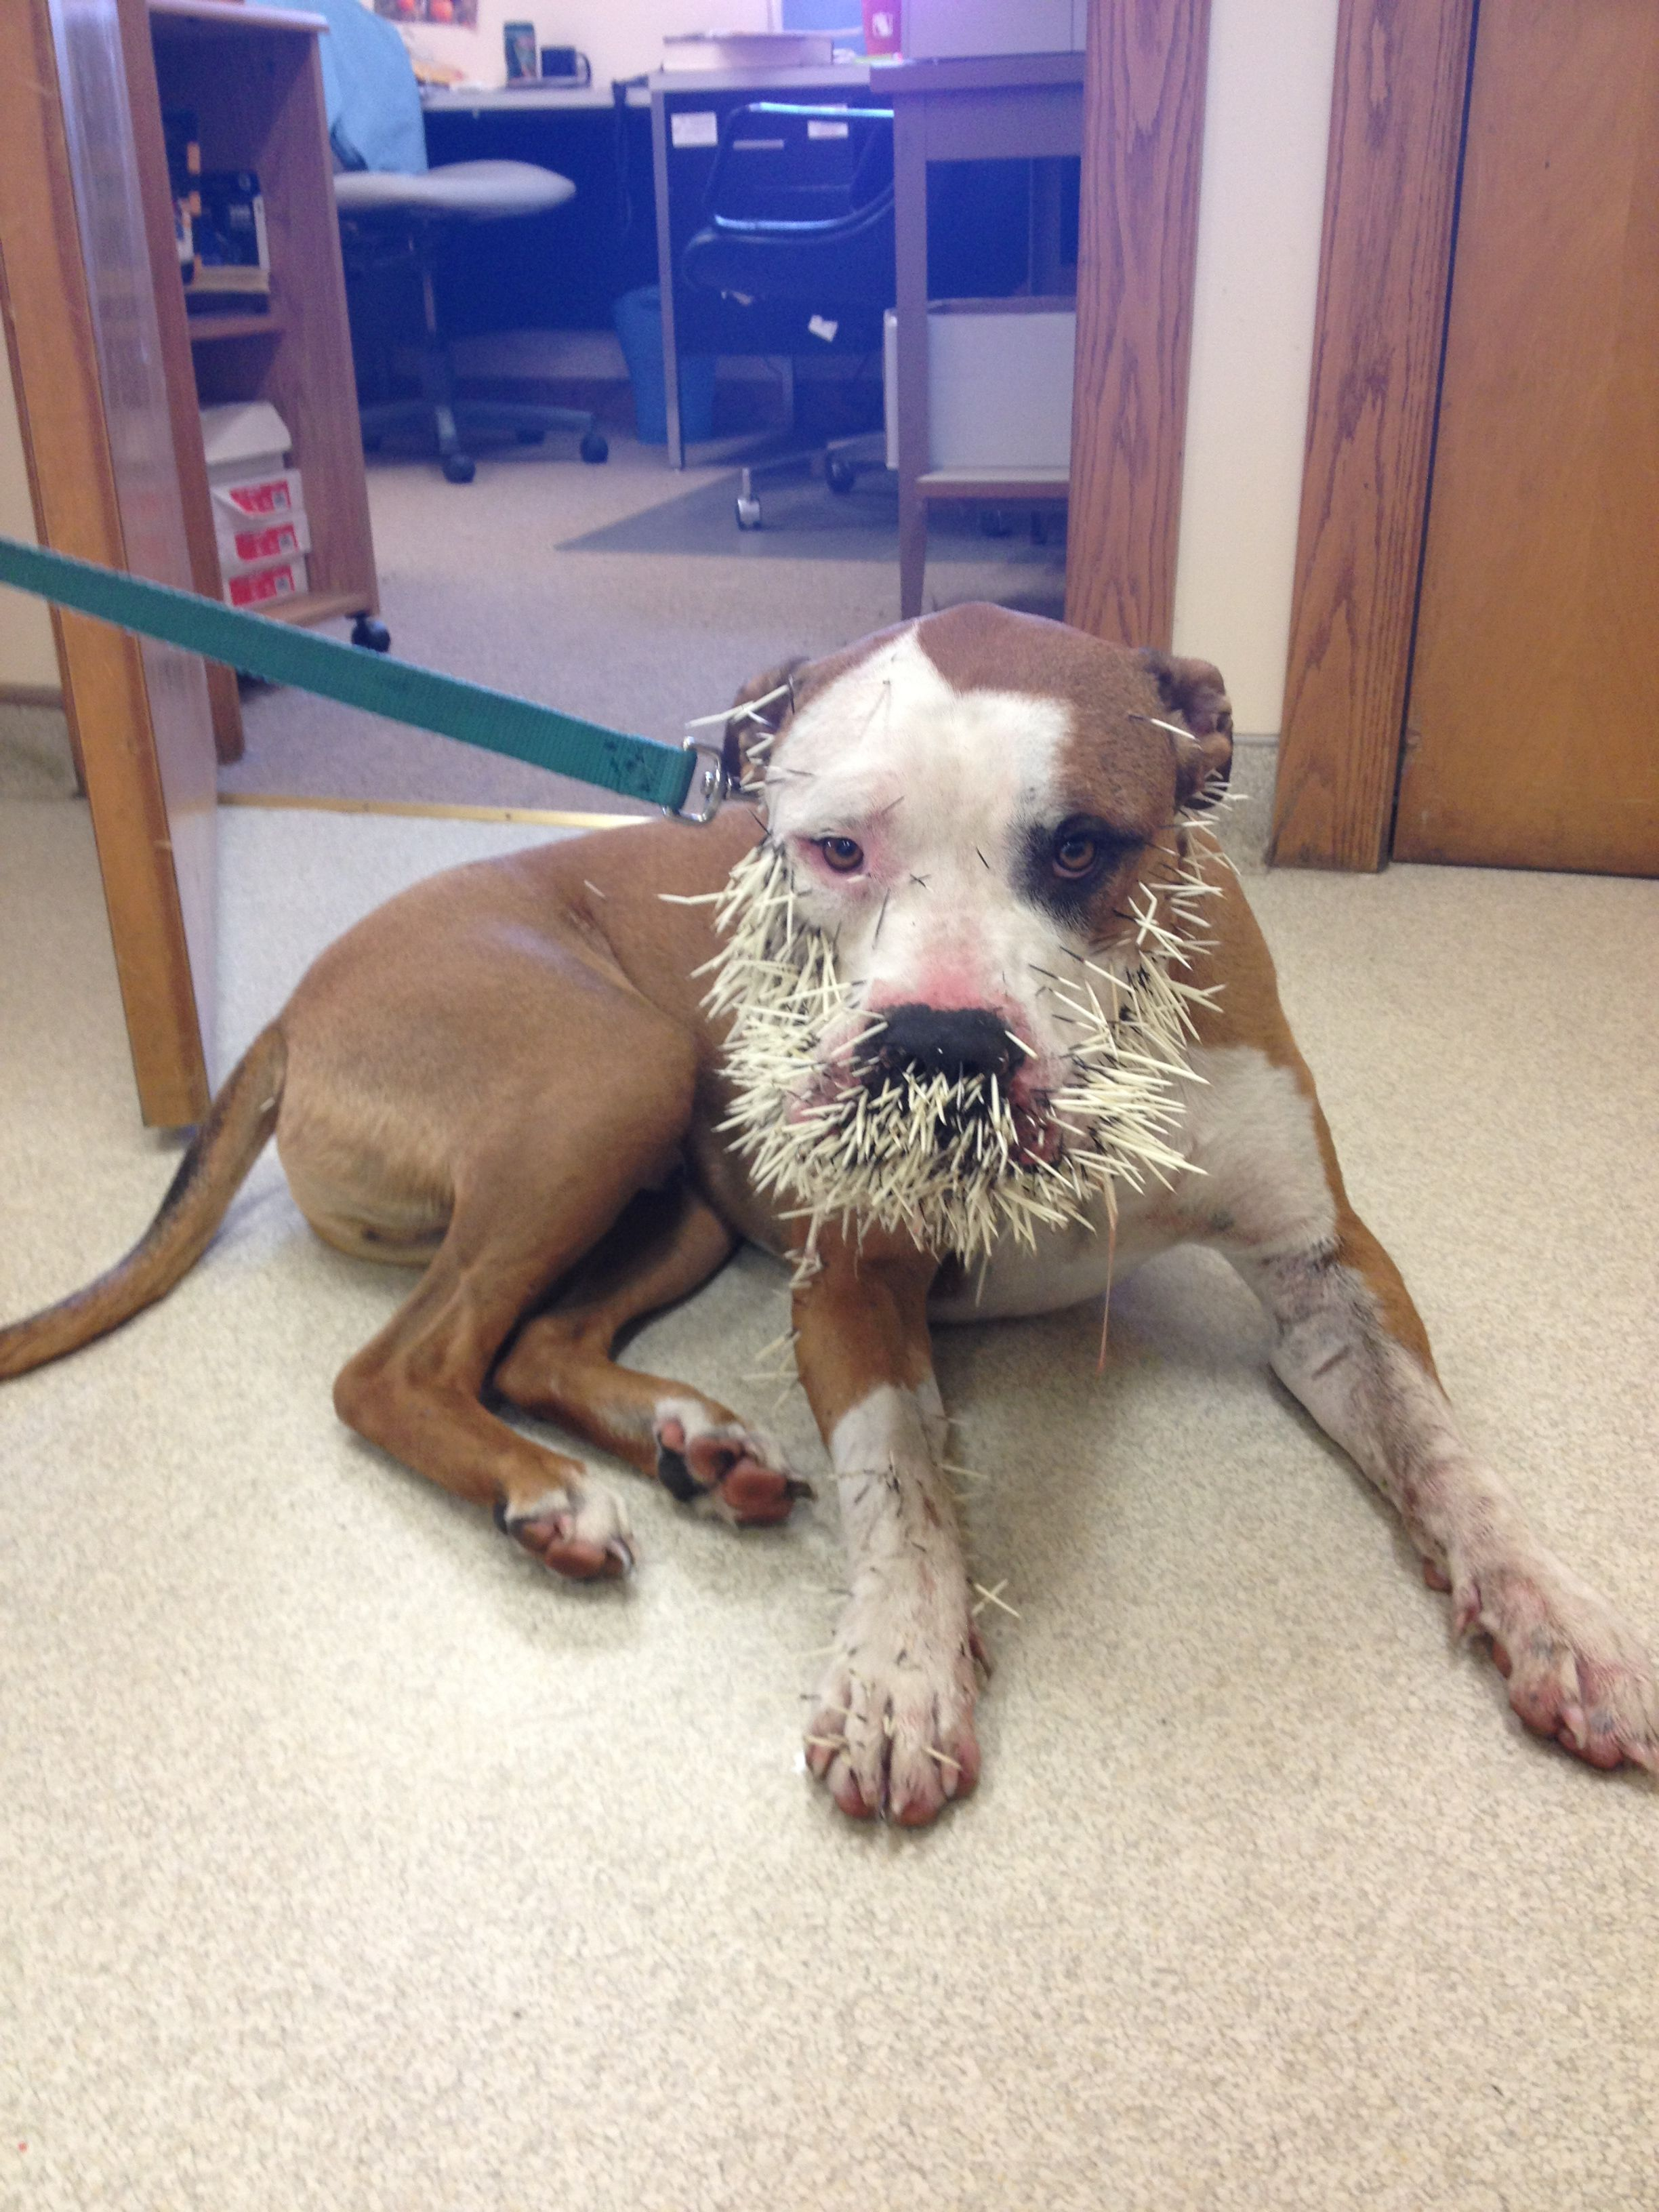 4cd8cad5c767d4200fcf258dbdf884cb - How To Get Porcupine Quills Out Of A Dog